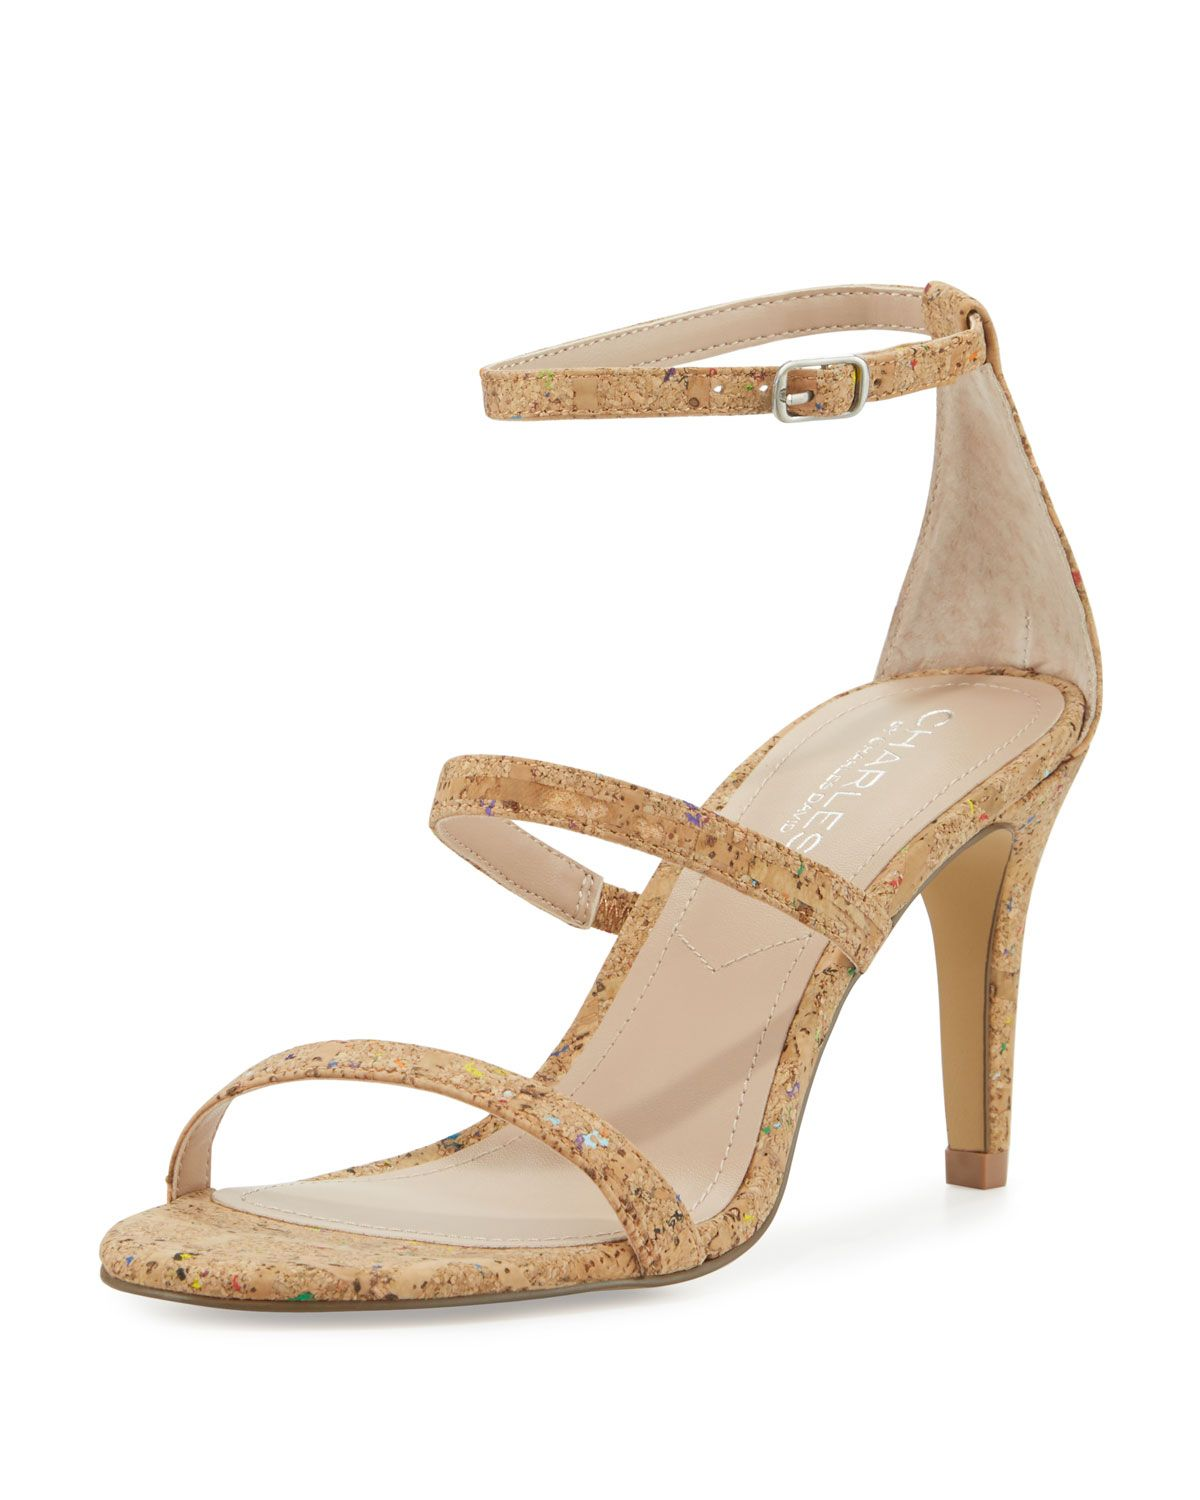 b4caa6bd51bfd Charles by Charles David Zion Cork (Brown) Strappy Sandal, Rainbow ...